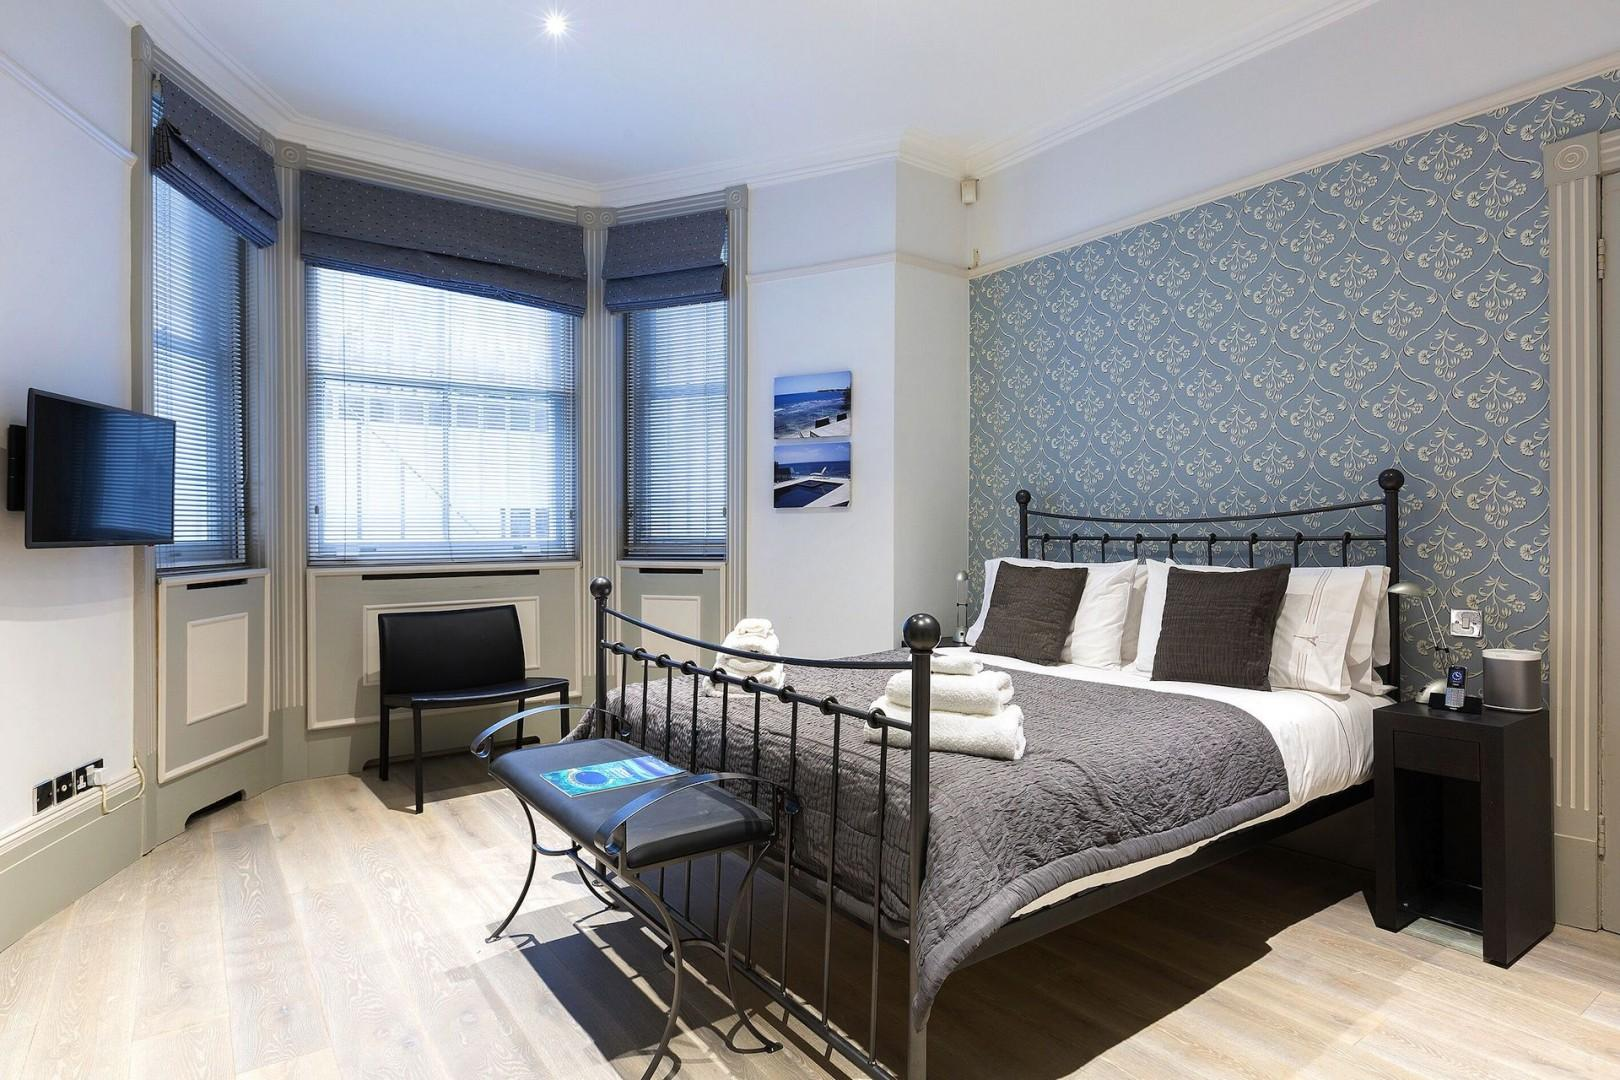 Bedroom 1 is spacious, comfortable, and bright, for a restful stay